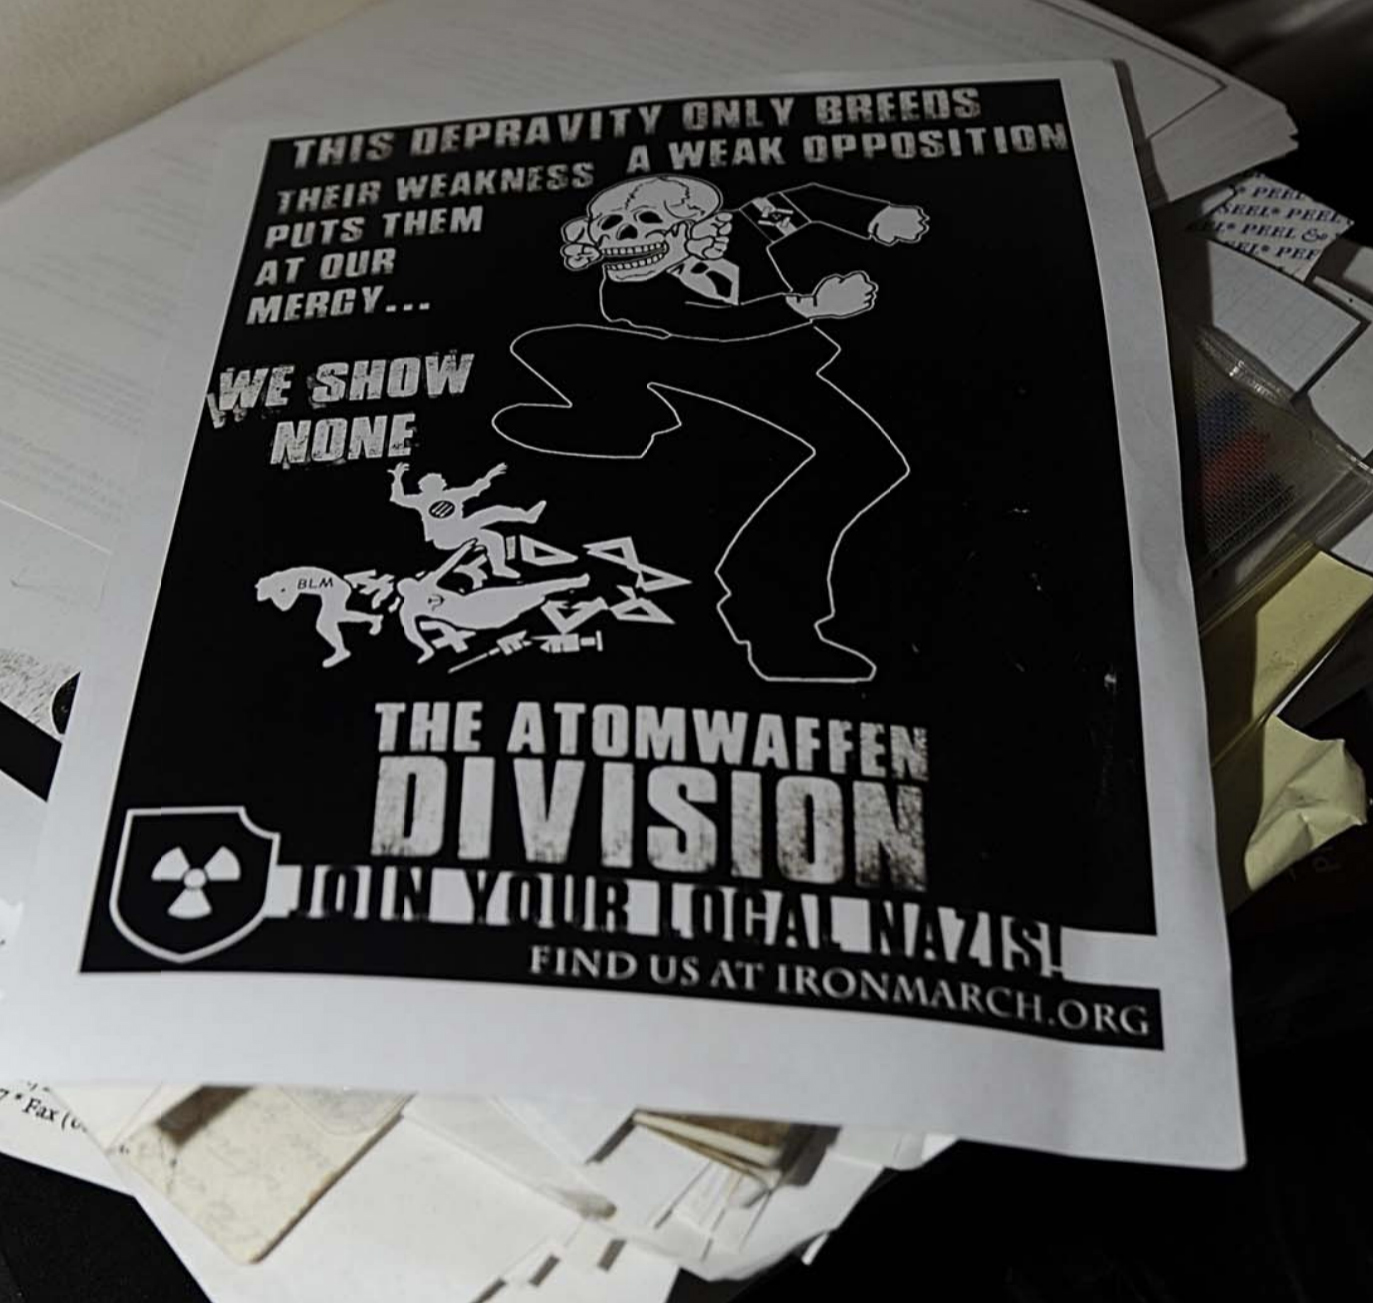 A flyer from Atomwaffen Division that was found during a search of Jeffrey and Edward Clark's house.